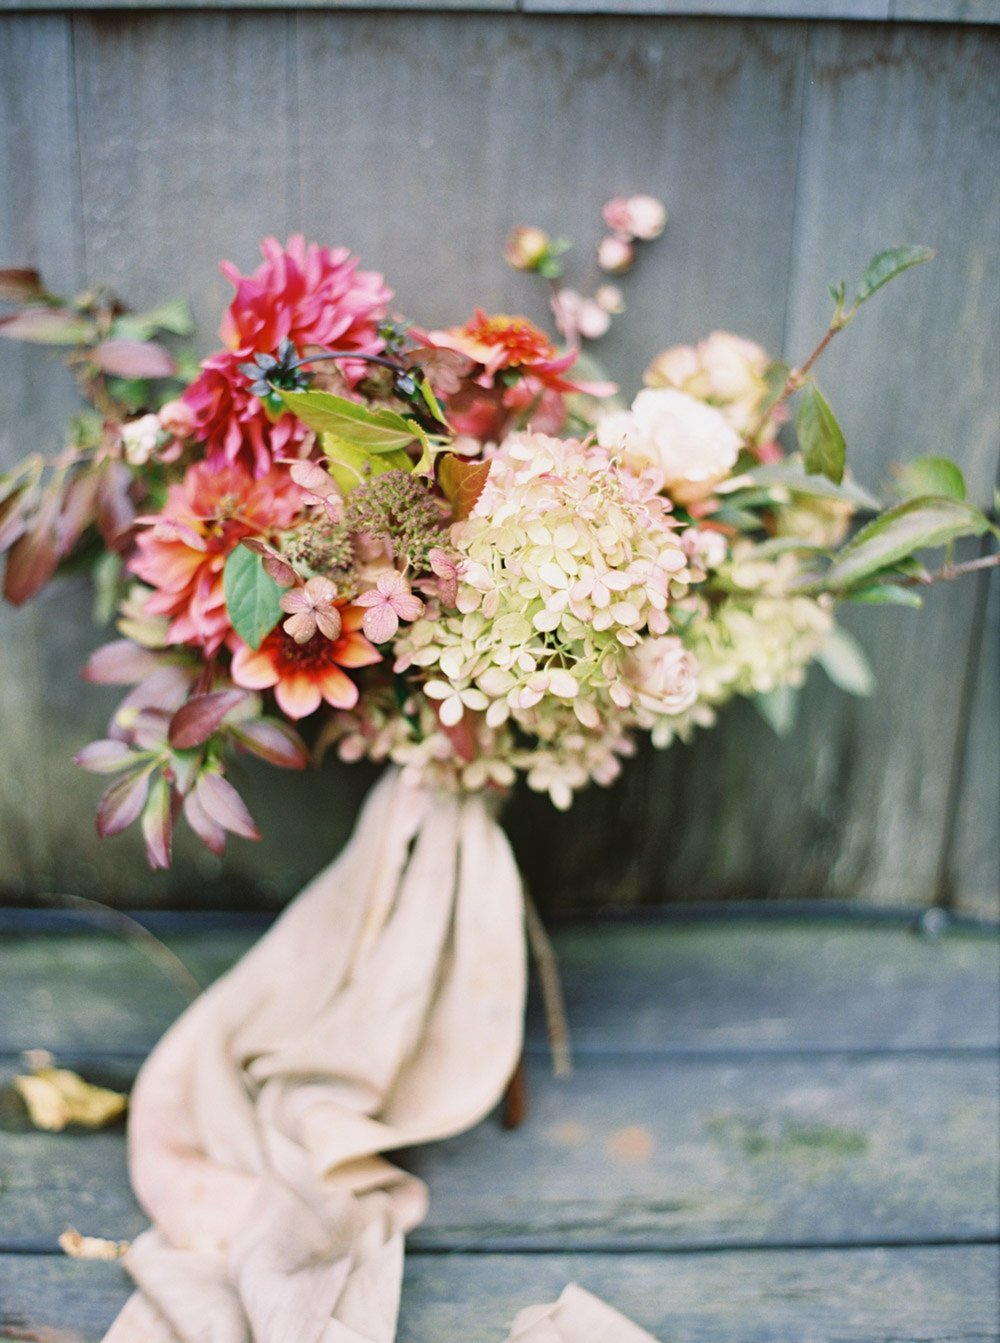 Bouquet of flowers resting on wooden background